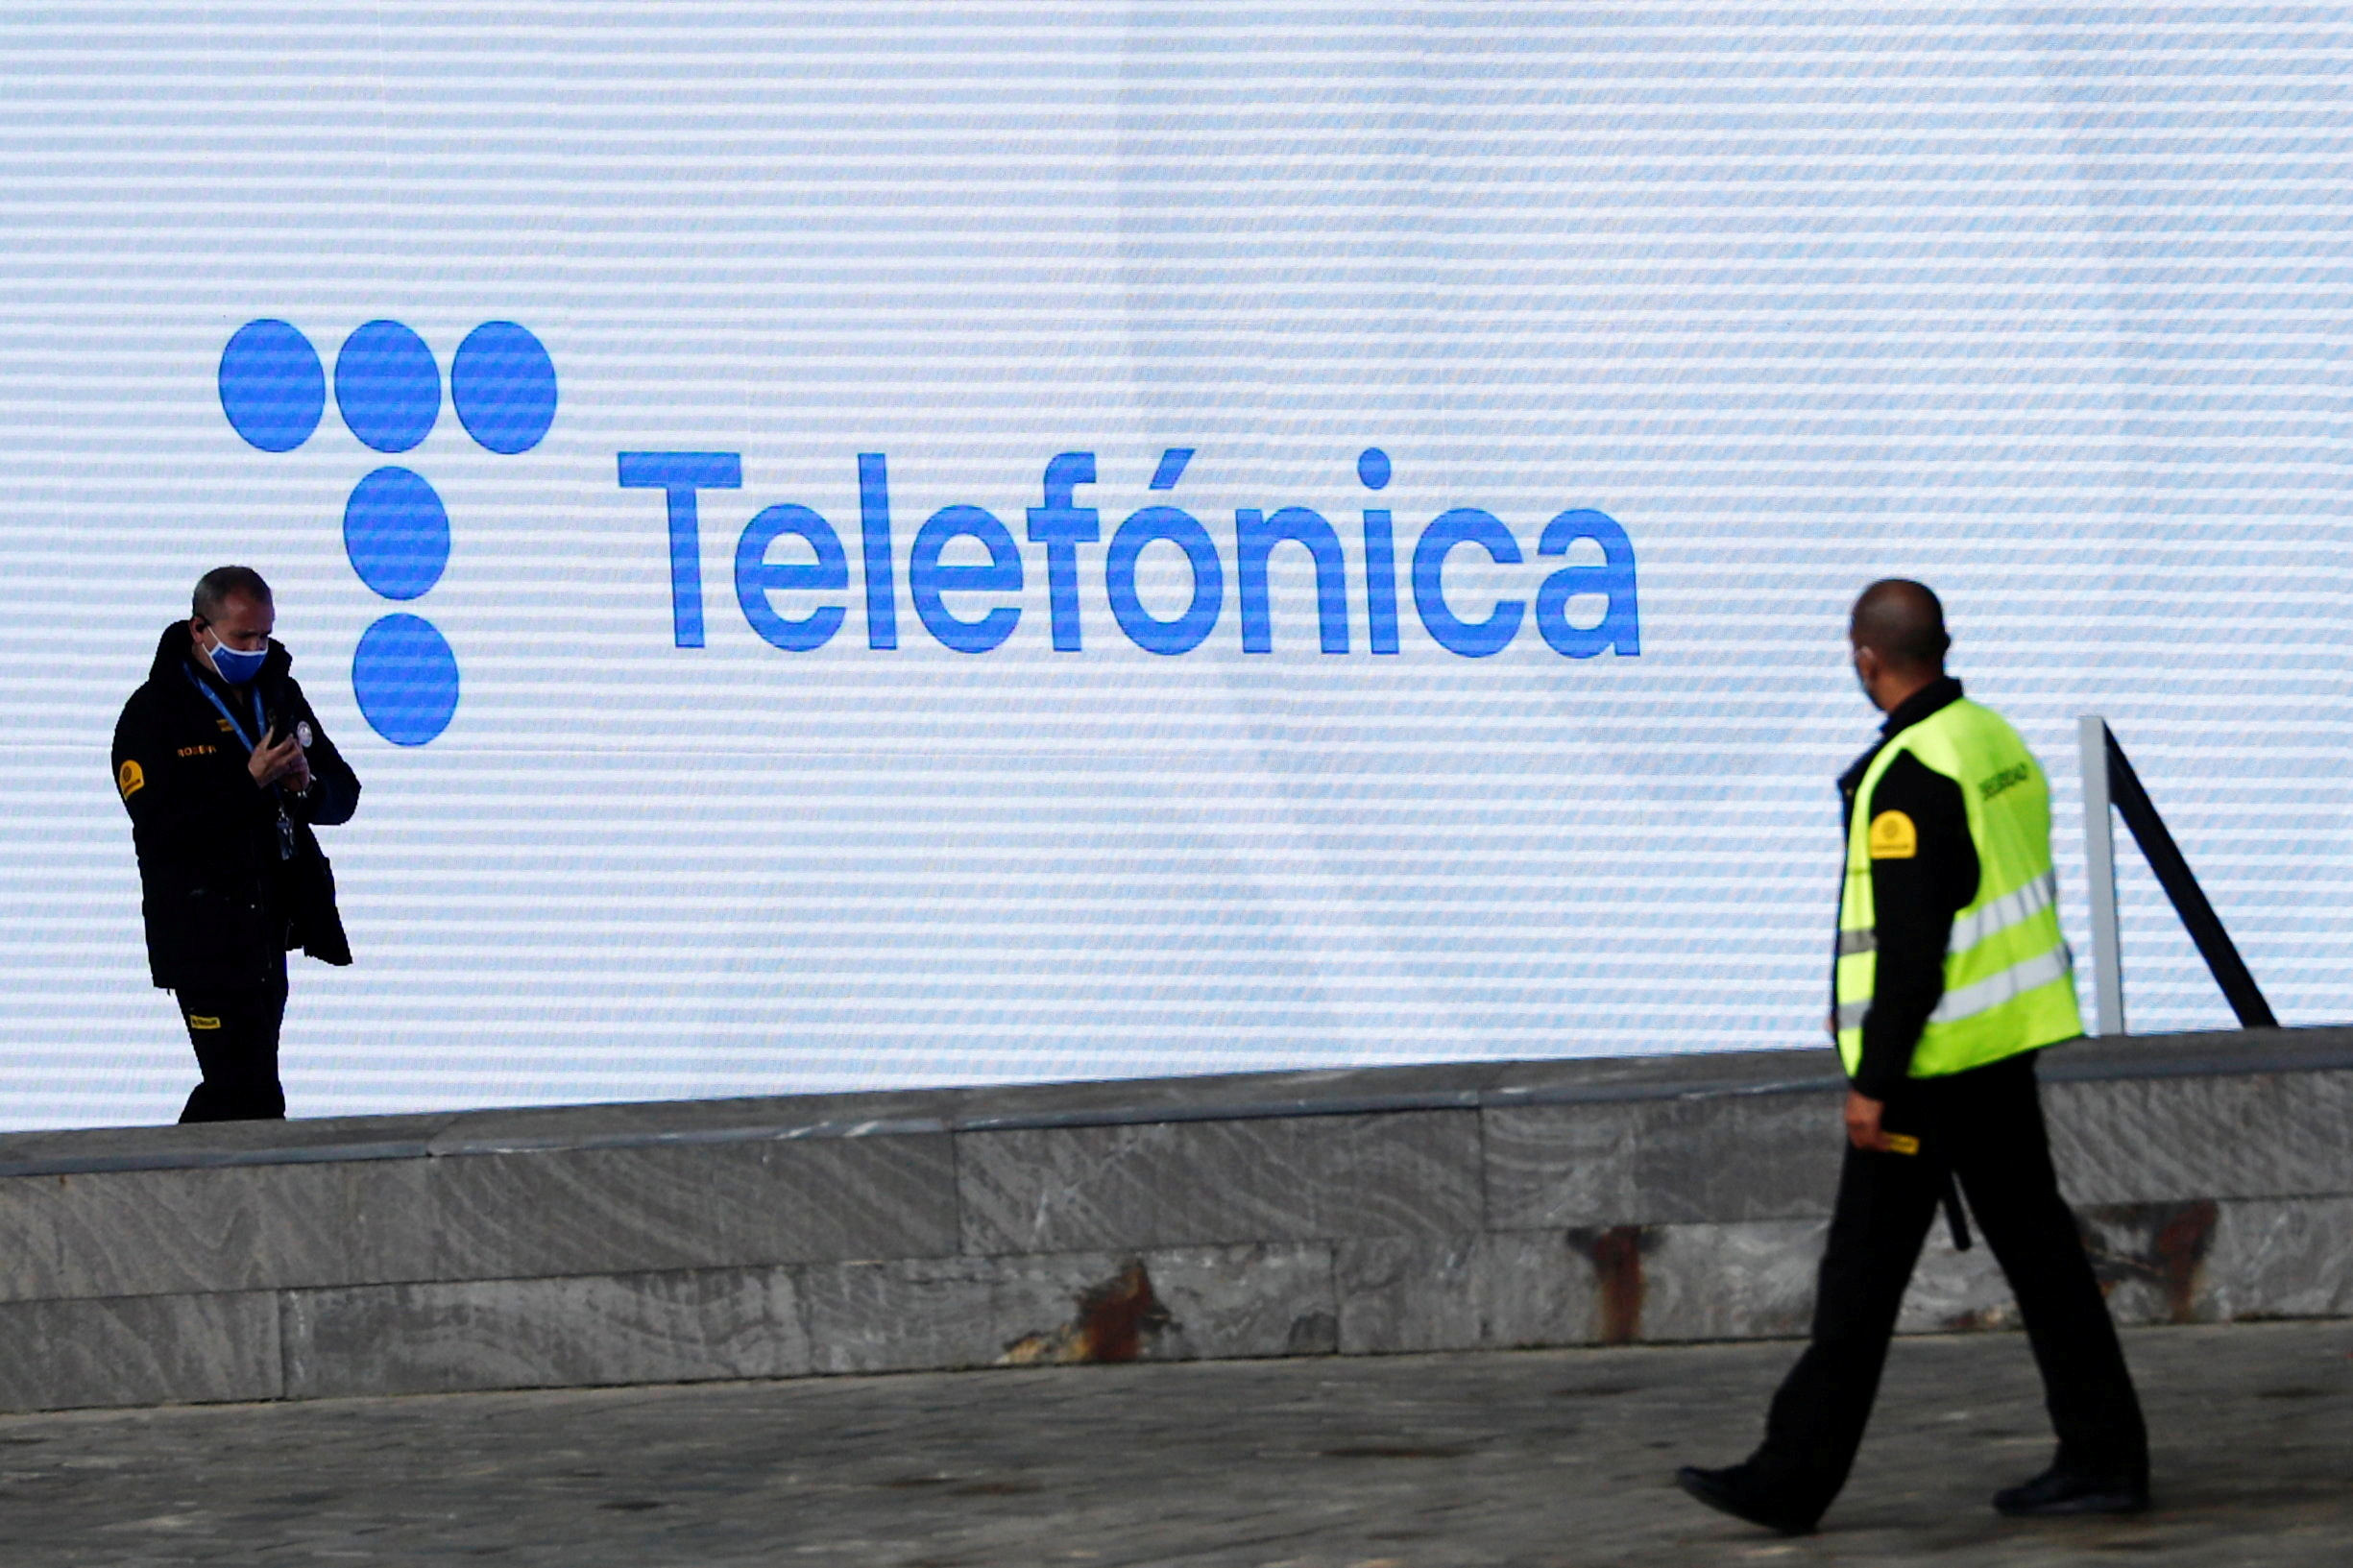 Security guards walk past a screen displaying the logo of Spanish Telecom company Telefonica at its headquarters in Madrid, Spain, May 12, 2021. REUTERS/Sergio Perez